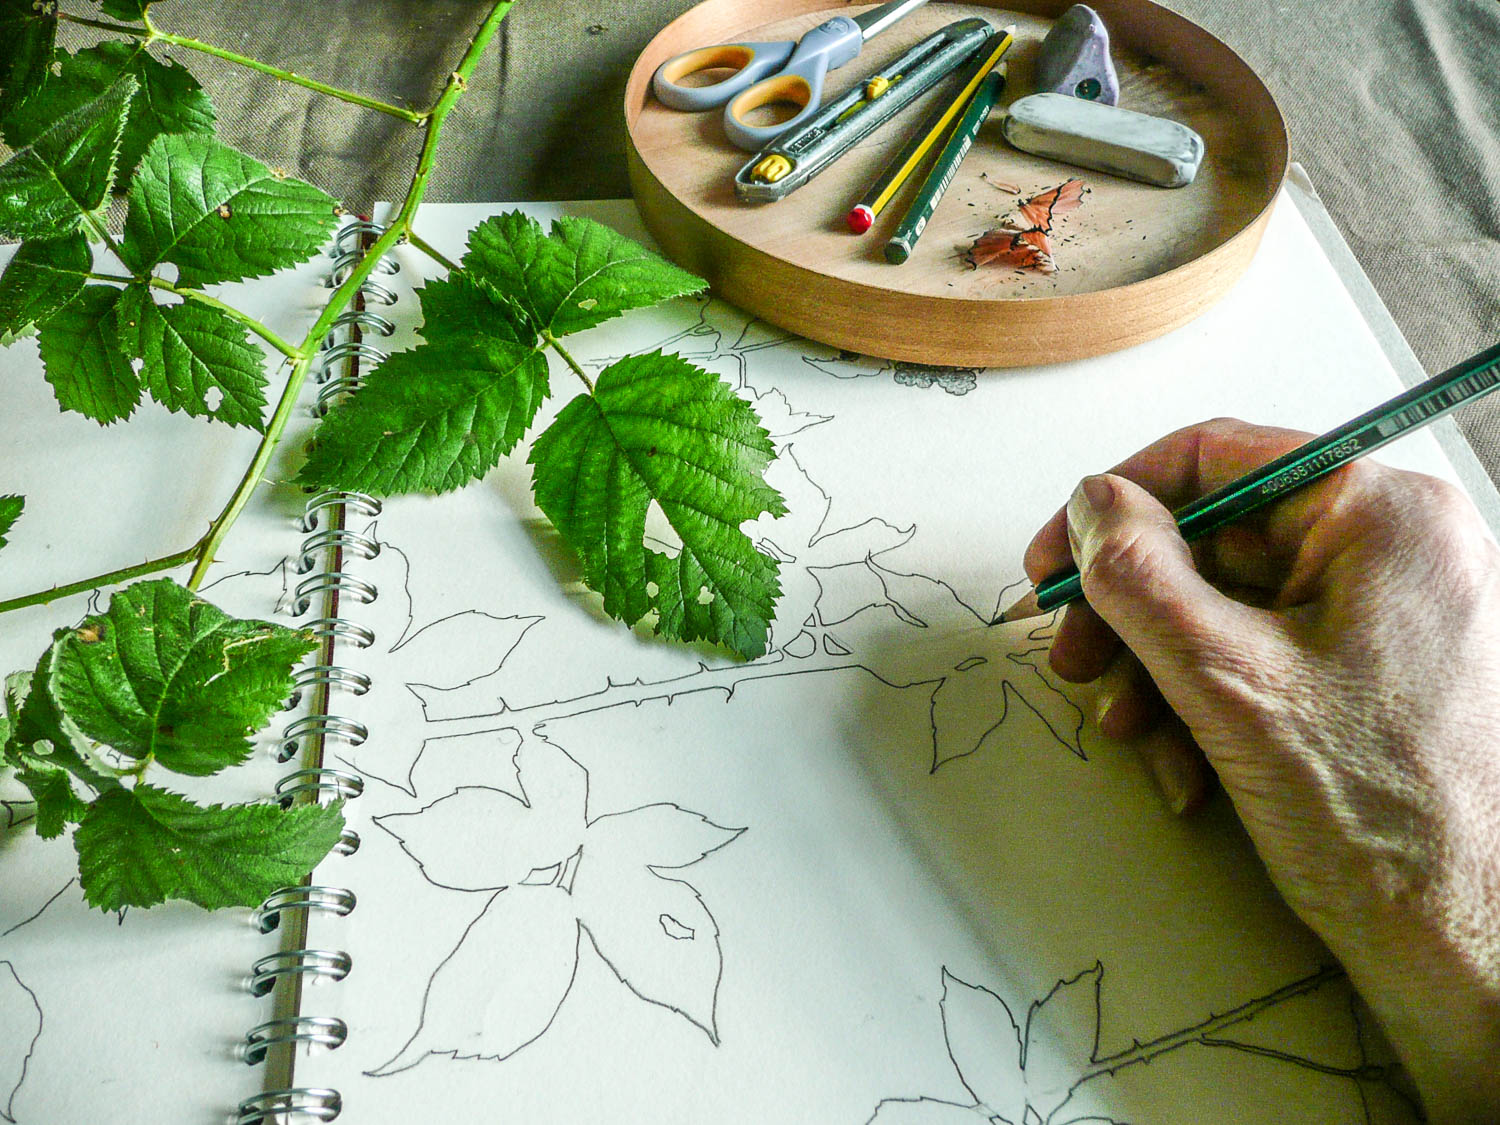 Sketching | Helen Poremba Textile Art & Sewing Classes